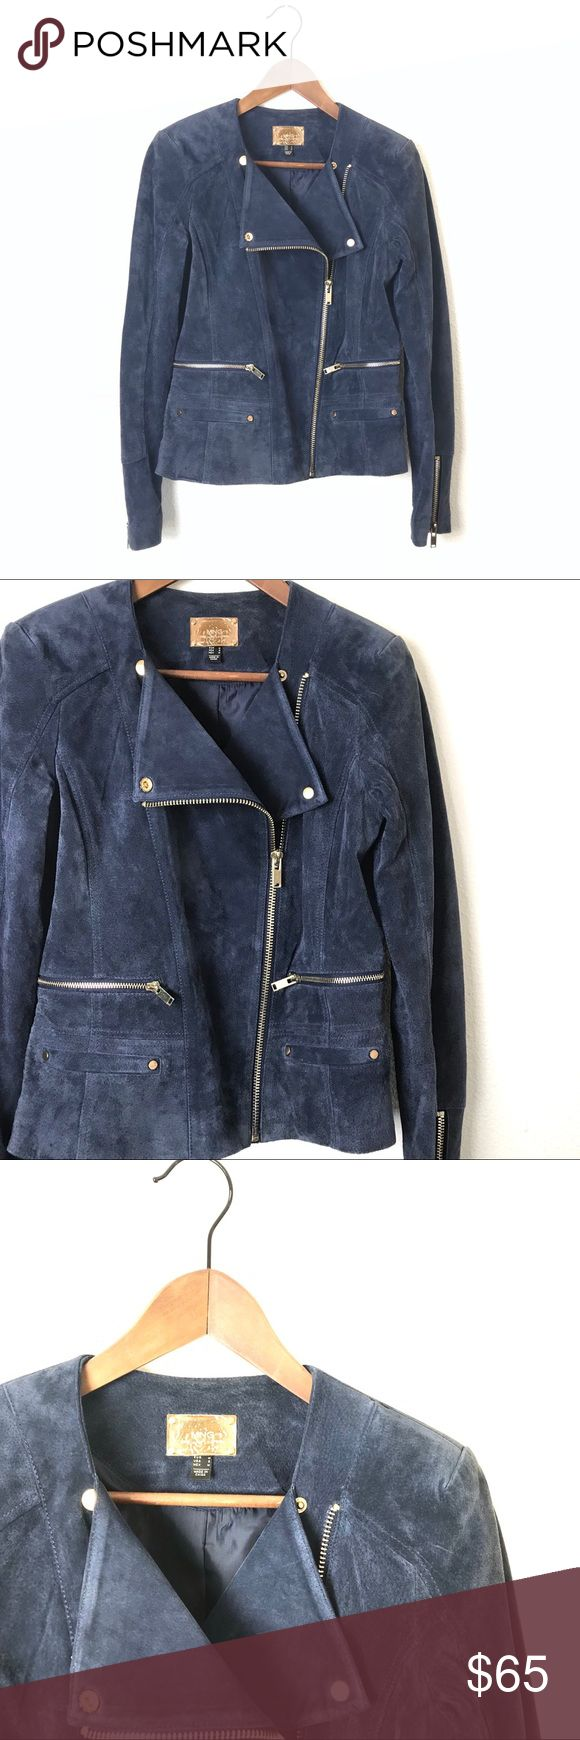 """MNG Blue Leather Suede Moto Jacket MNG Blue Leather Suede Moto Jacket. 23"""" long. 18"""" across the chest. Genuine Leather. Fitted style. Gold zippers and studs. Lined. Gently worn and in great condition. Only signs of wear are on gold Snap that's a little scratched. Size S. Mango Jackets & Coats"""